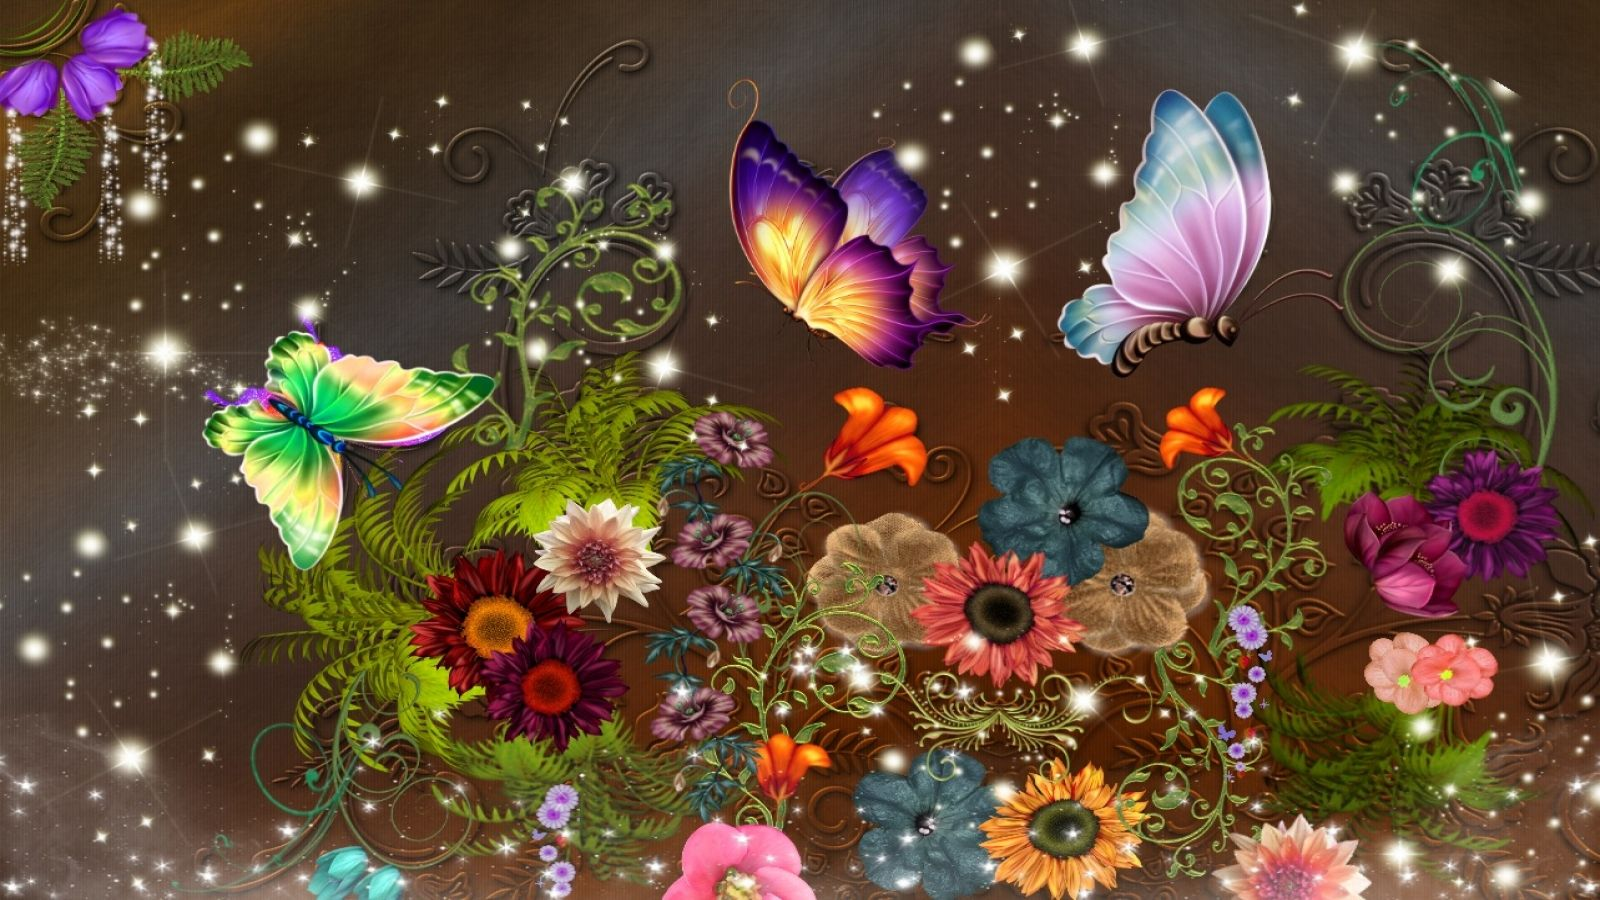 Butterfly Wallpaper 40 Hd Animal 1600x900 Wallulung Com With